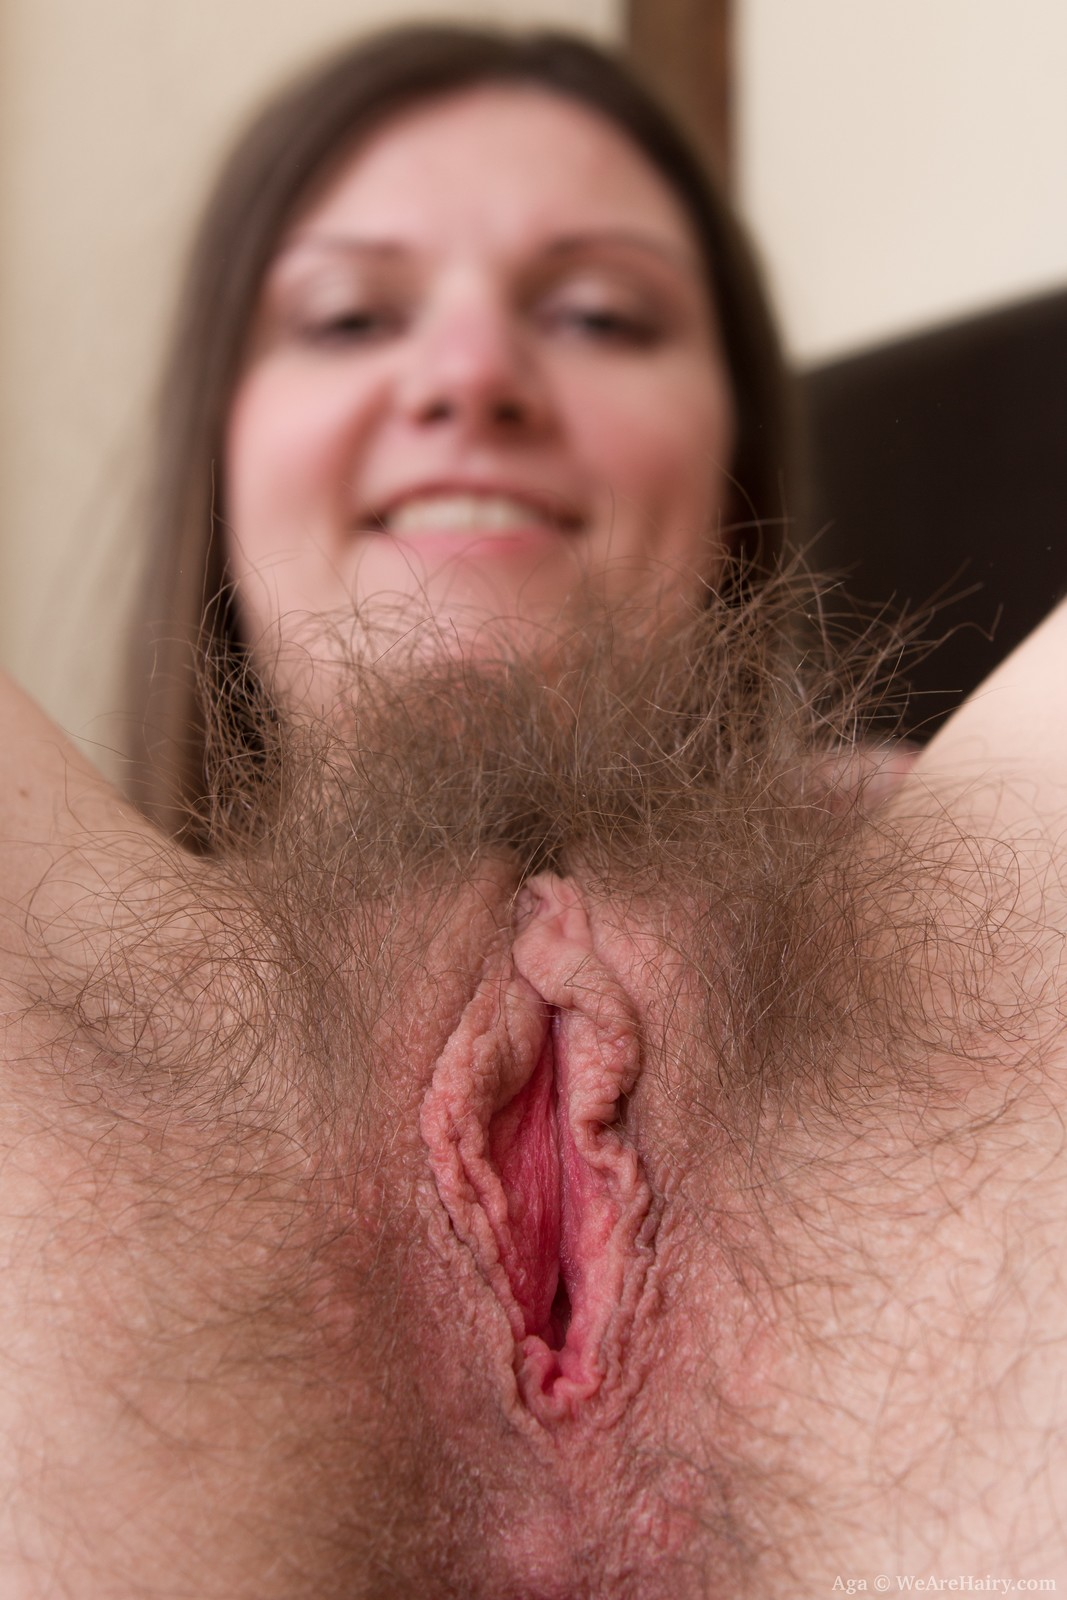 http://thehairylady.com/blog/slim-milf-aga-spreads-sweet-hairy-pussy/